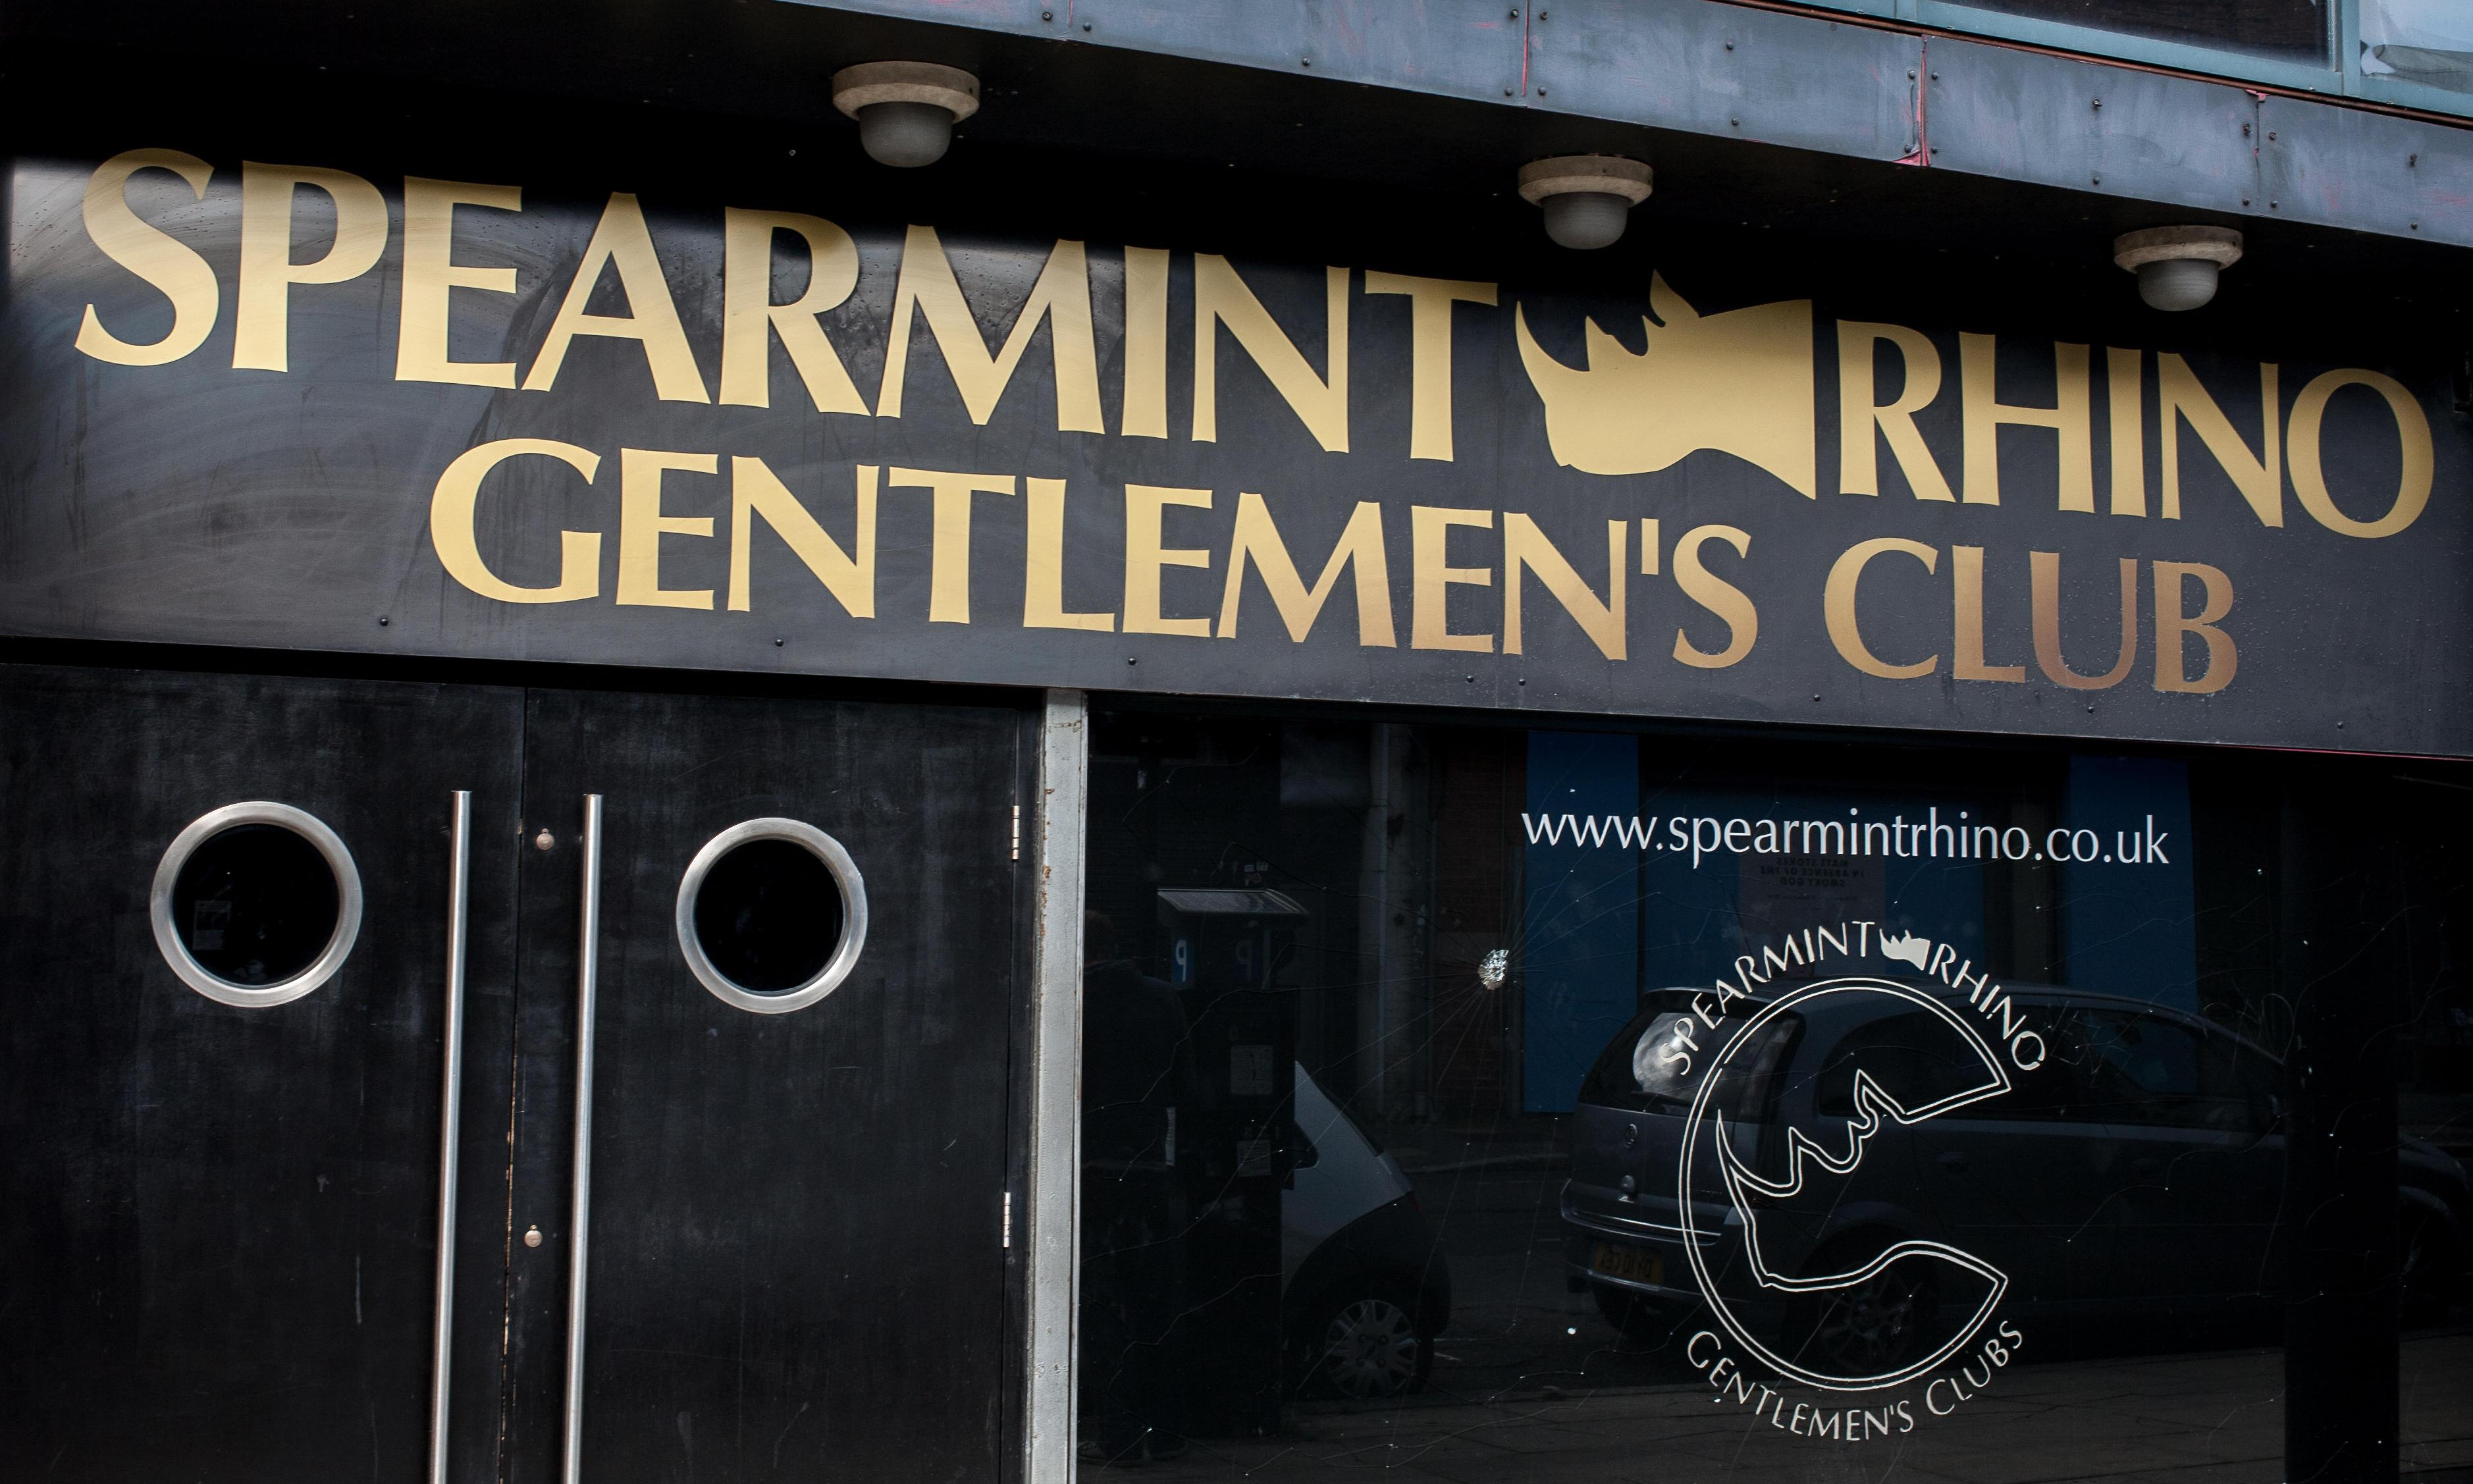 Judge rejects appeal for anonymity by secretly filmed strip-club dancers